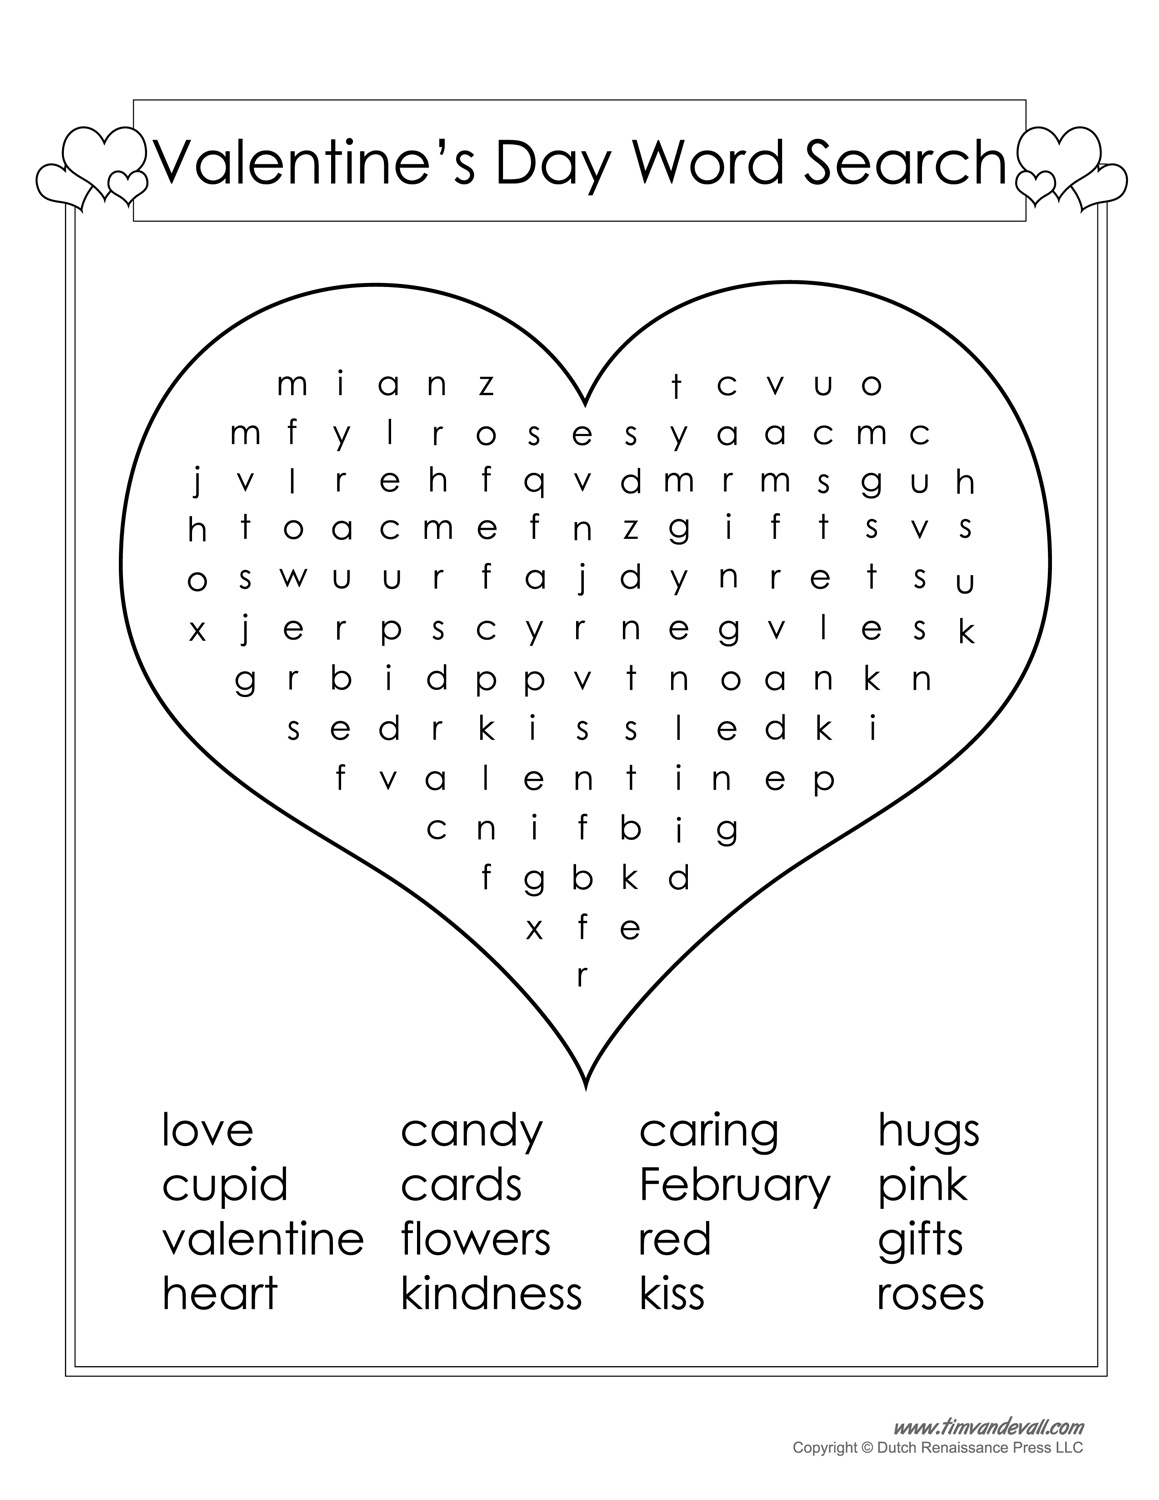 12 Valentine's Day Word Search | Kittybabylove - Printable Heart Puzzles